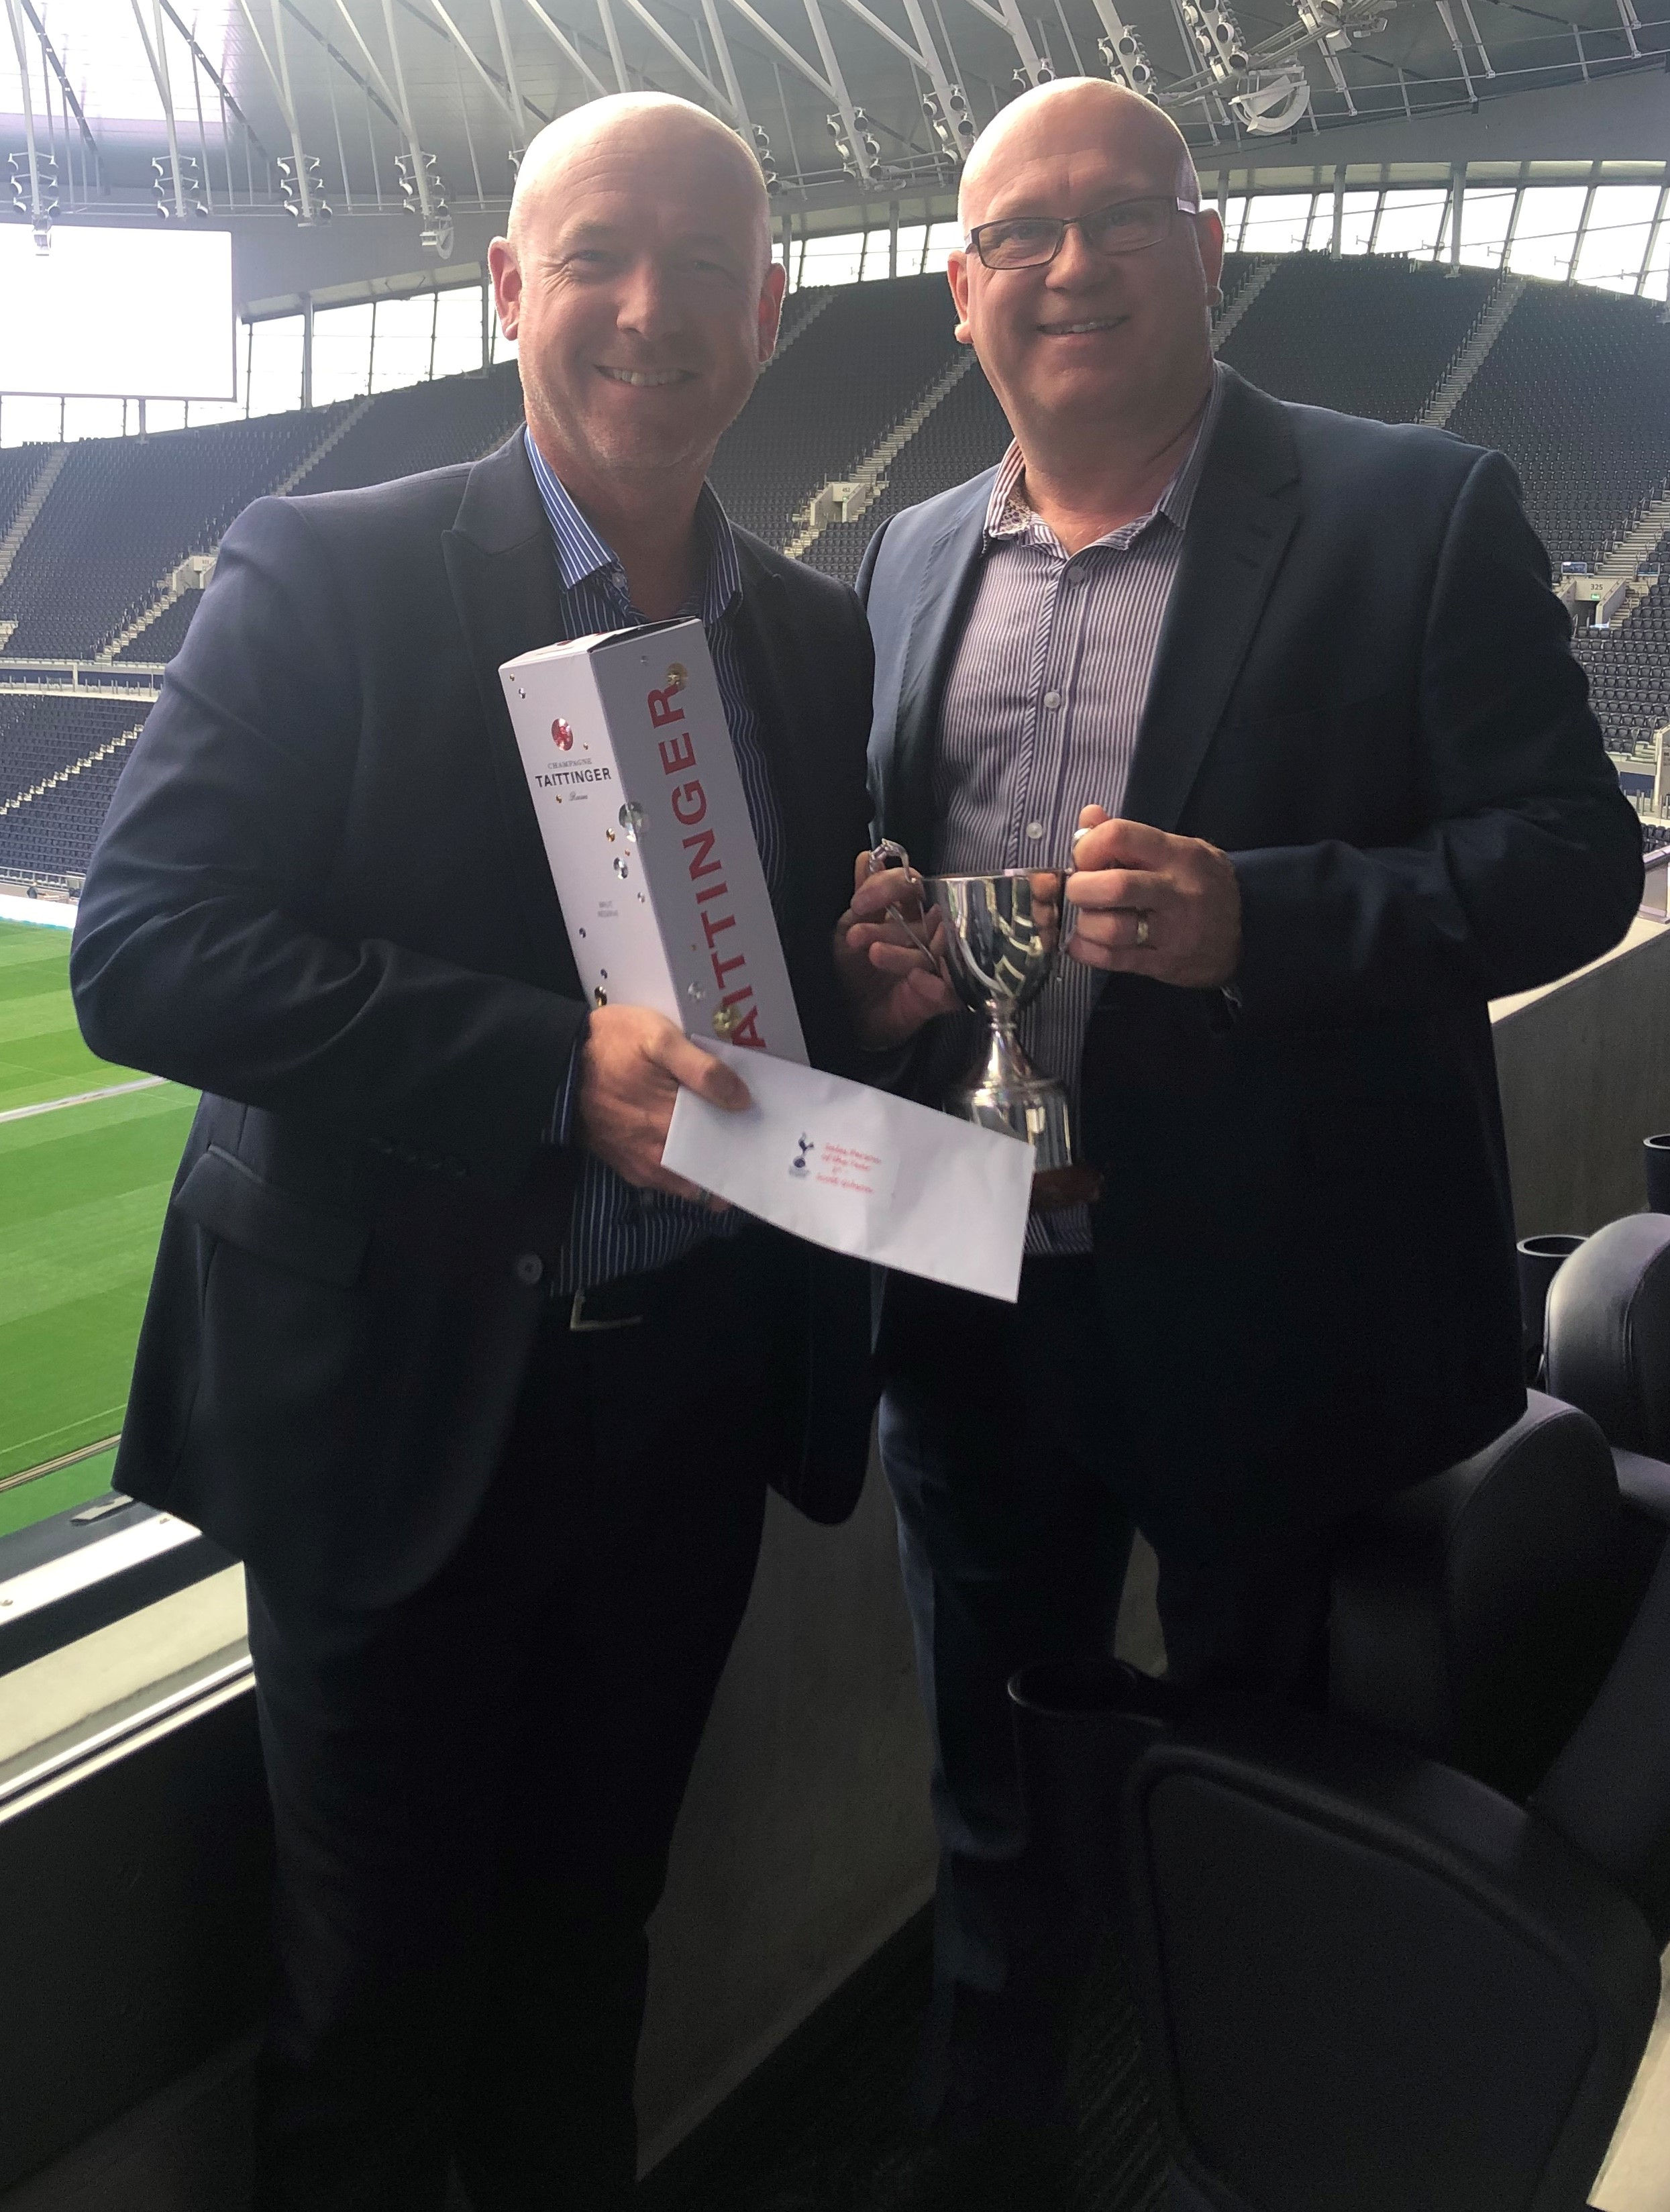 Above: Scott Gibson (left) received the Sales Person of the Year Award from Words 'n' Wishes joint md Carl Salt.